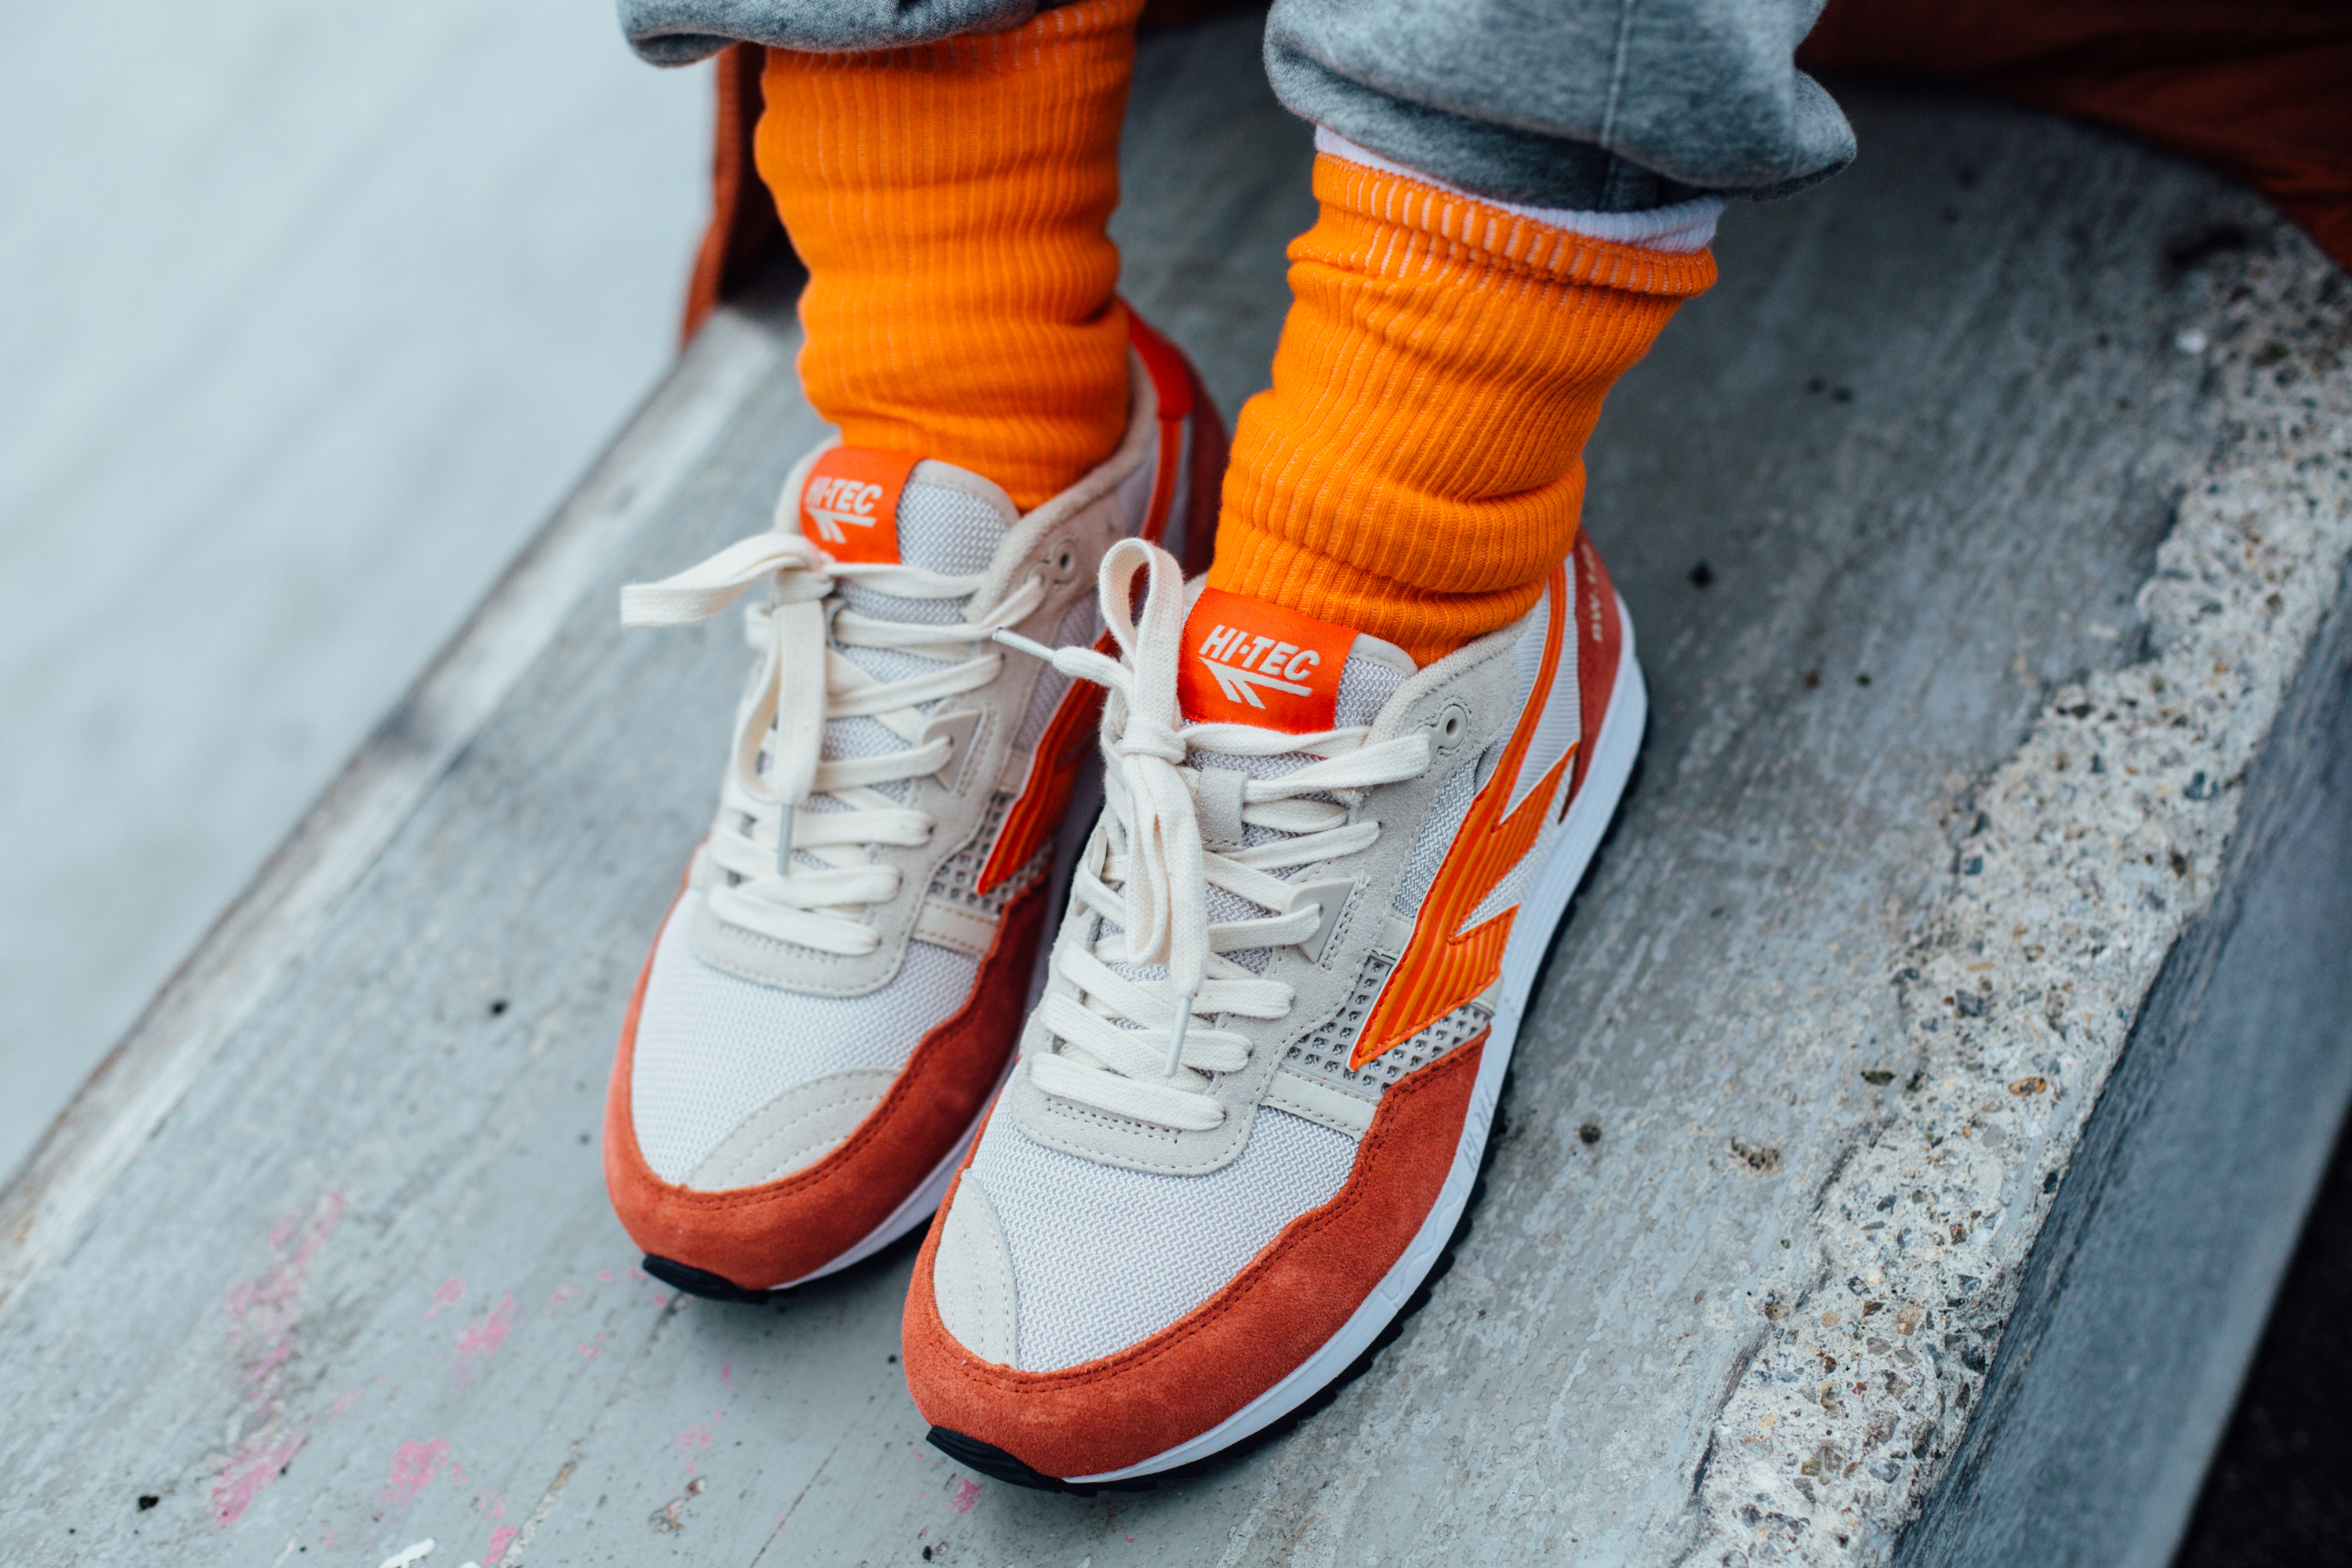 Hi-tec announces AW19 orange trainers